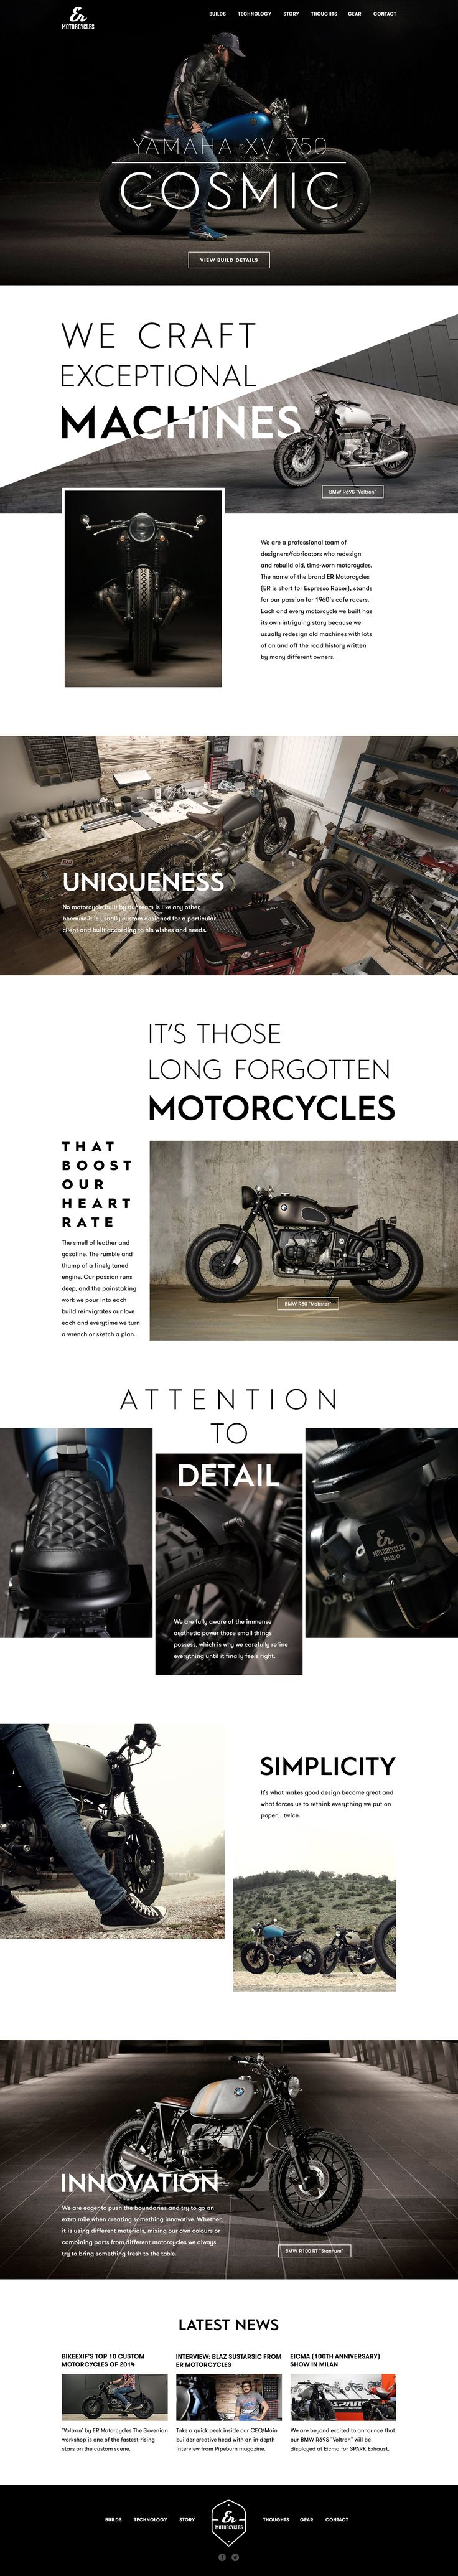 Clean and simple web design with creative typography for a motorcycle company.